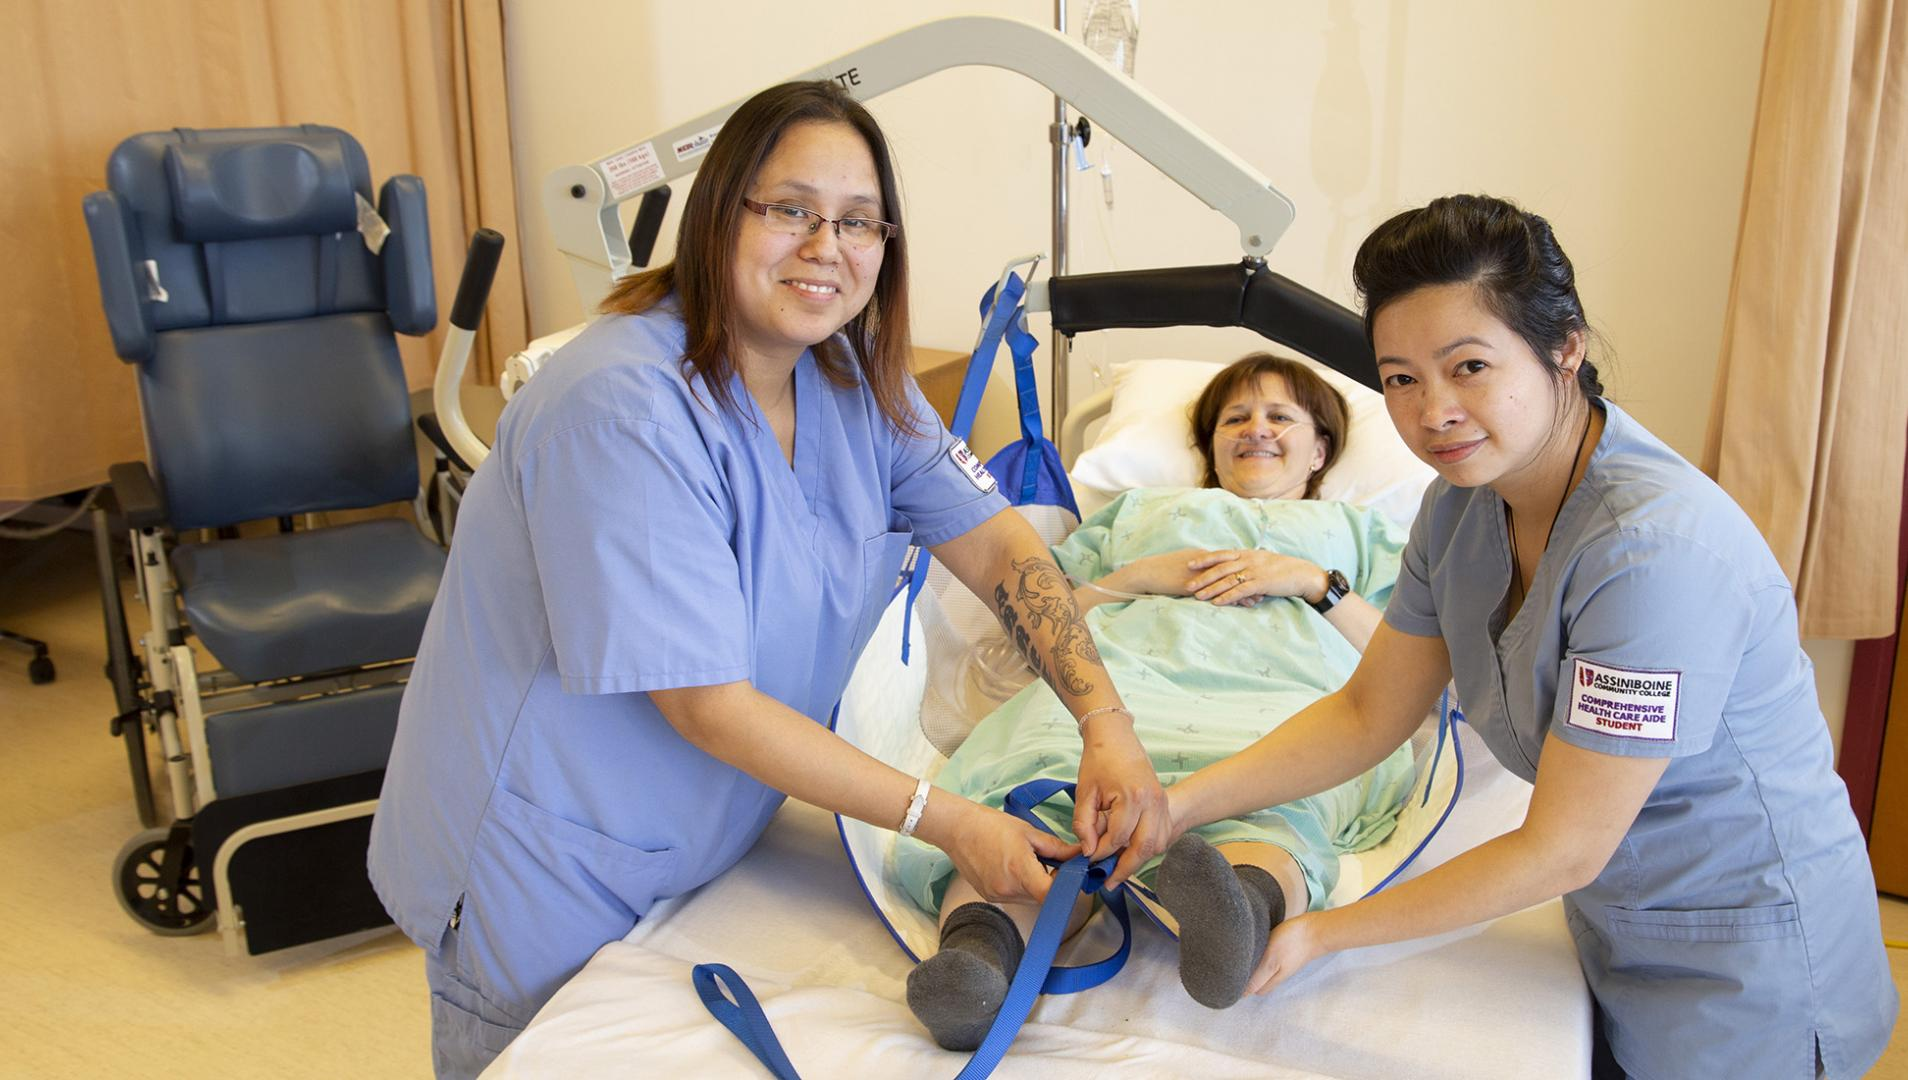 Comprehensive Health Care Aide students working with a patient